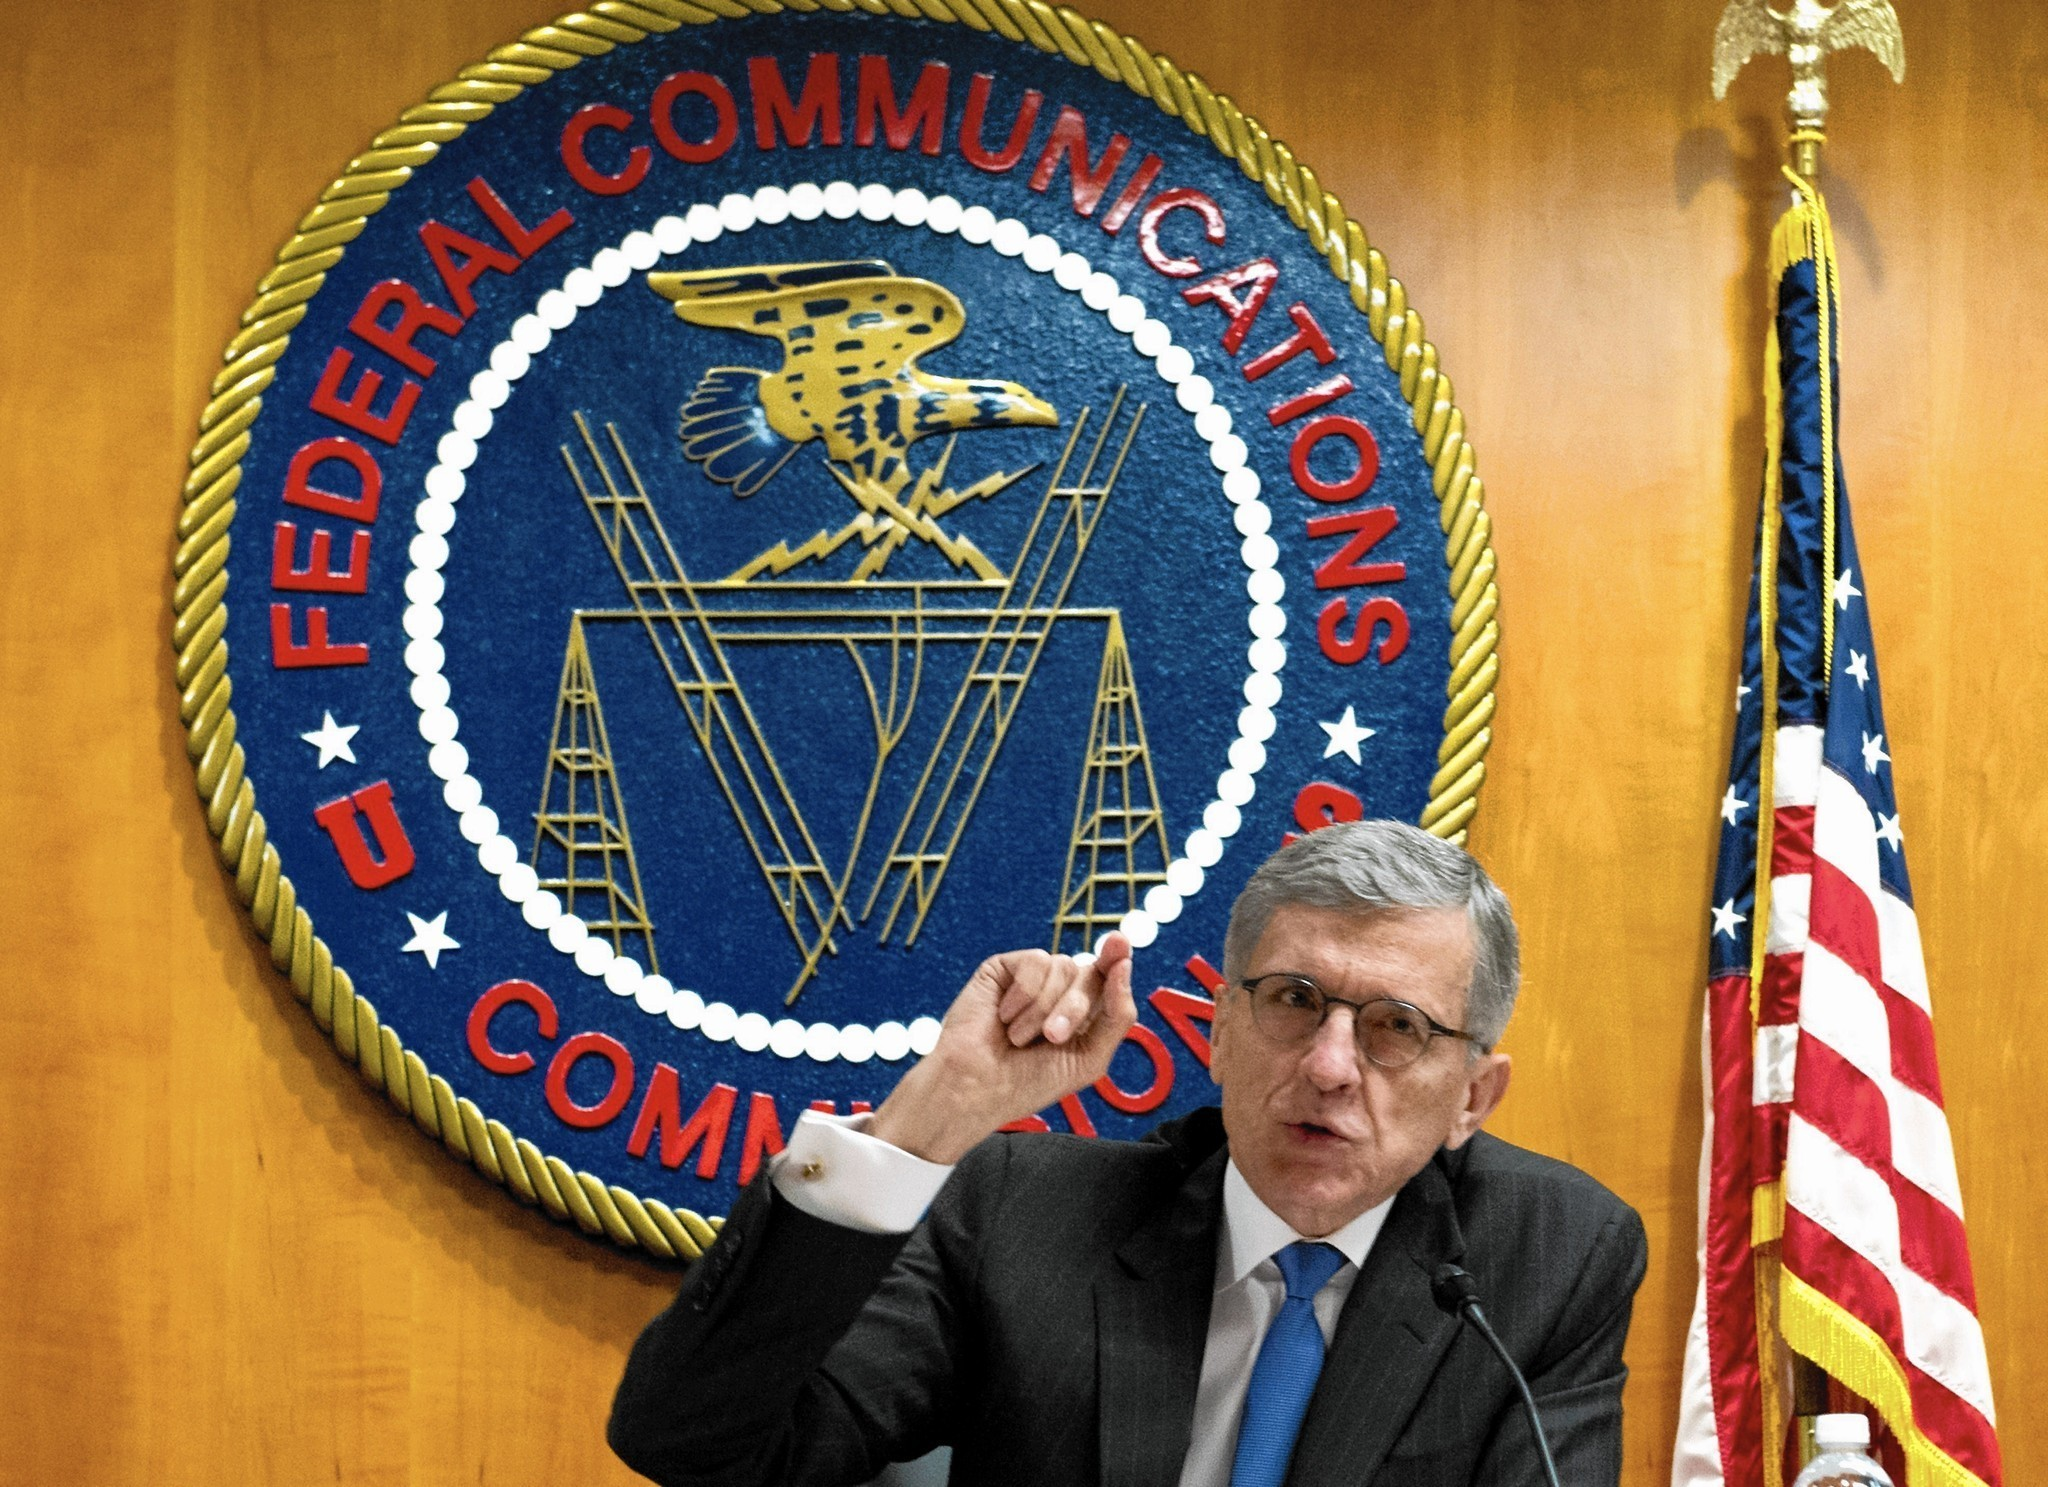 fcc chief seeks to treat web as public utility in net neutrality fcc chief seeks to treat web as public utility in net neutrality fight la times